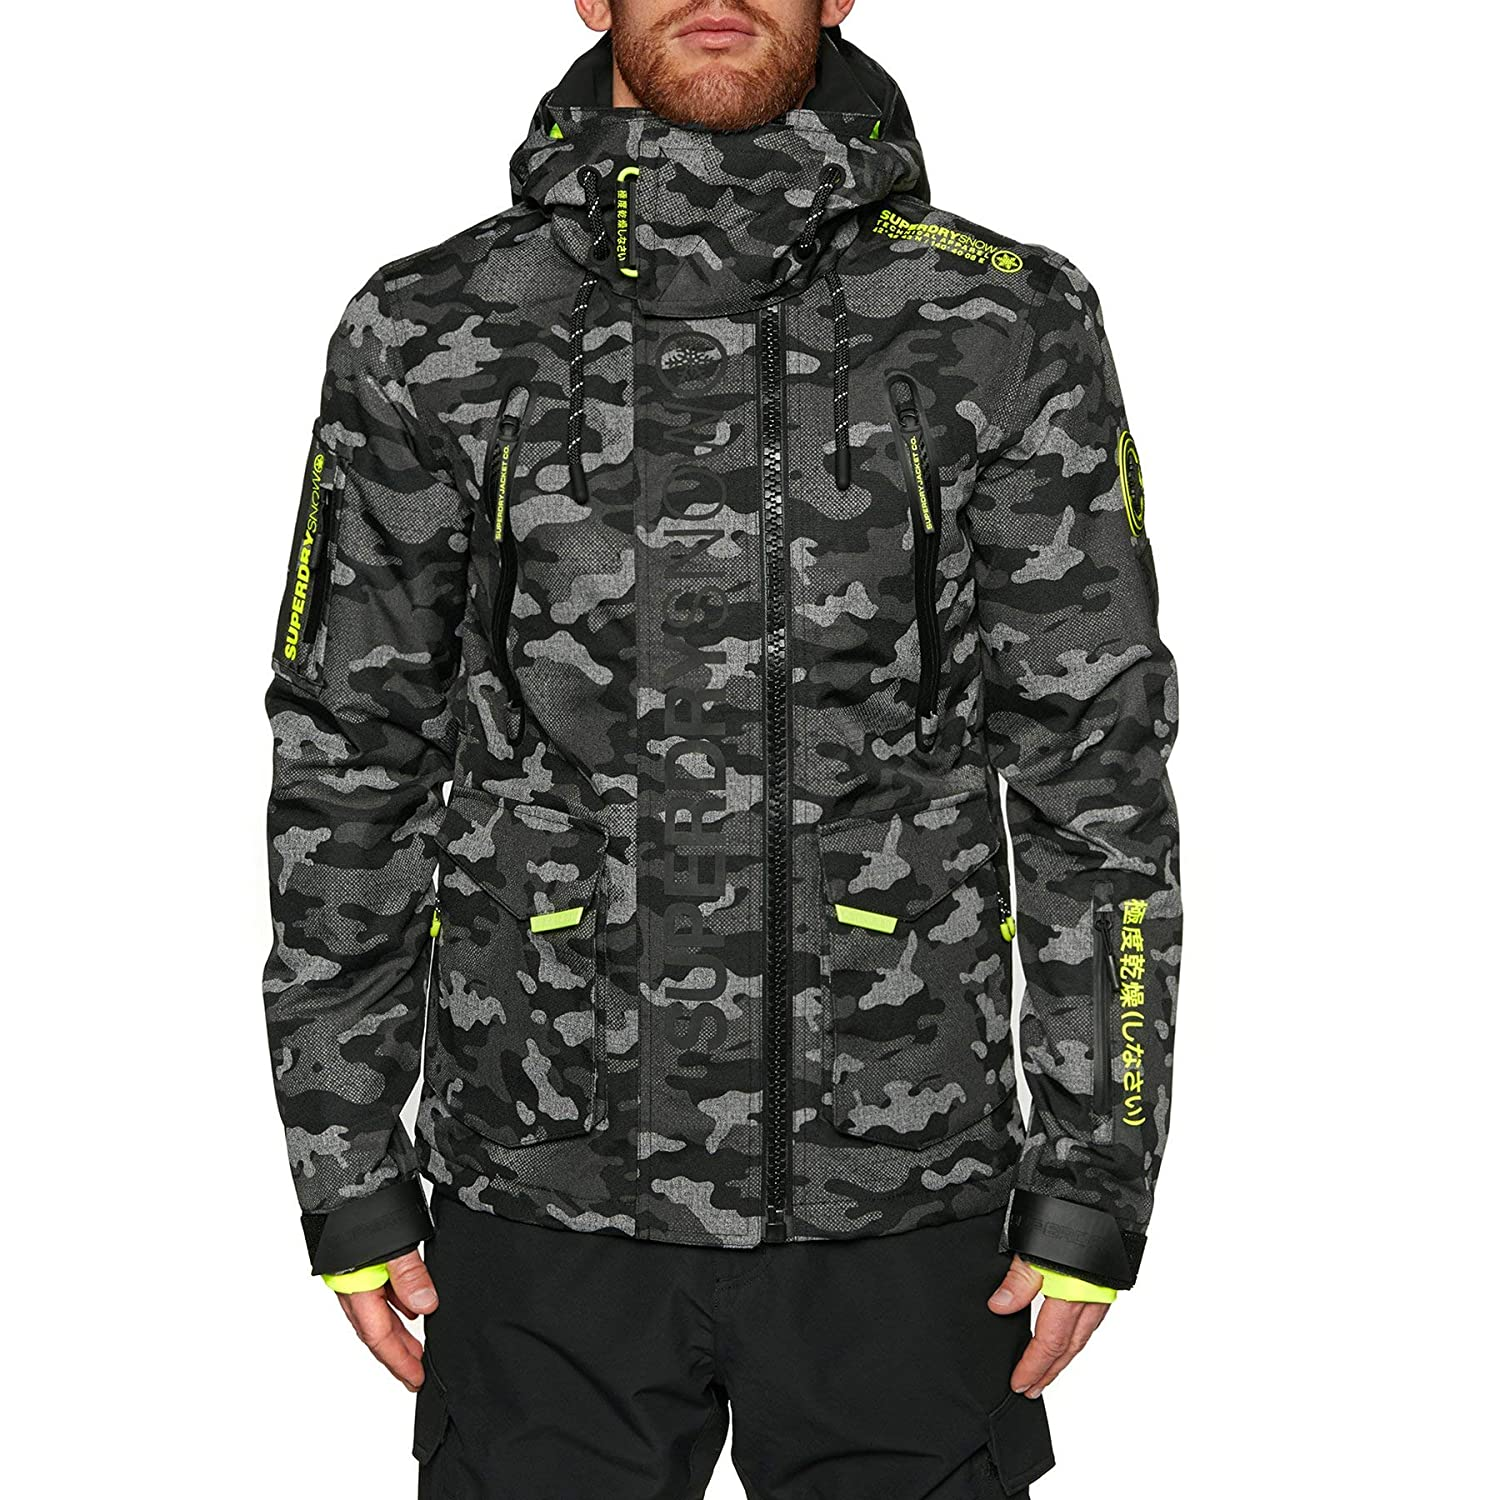 1cfb0e8eab321 Superdry Ultimate Snow Rescue Snow Jacket Small Contrast Camo:  Amazon.co.uk: Clothing